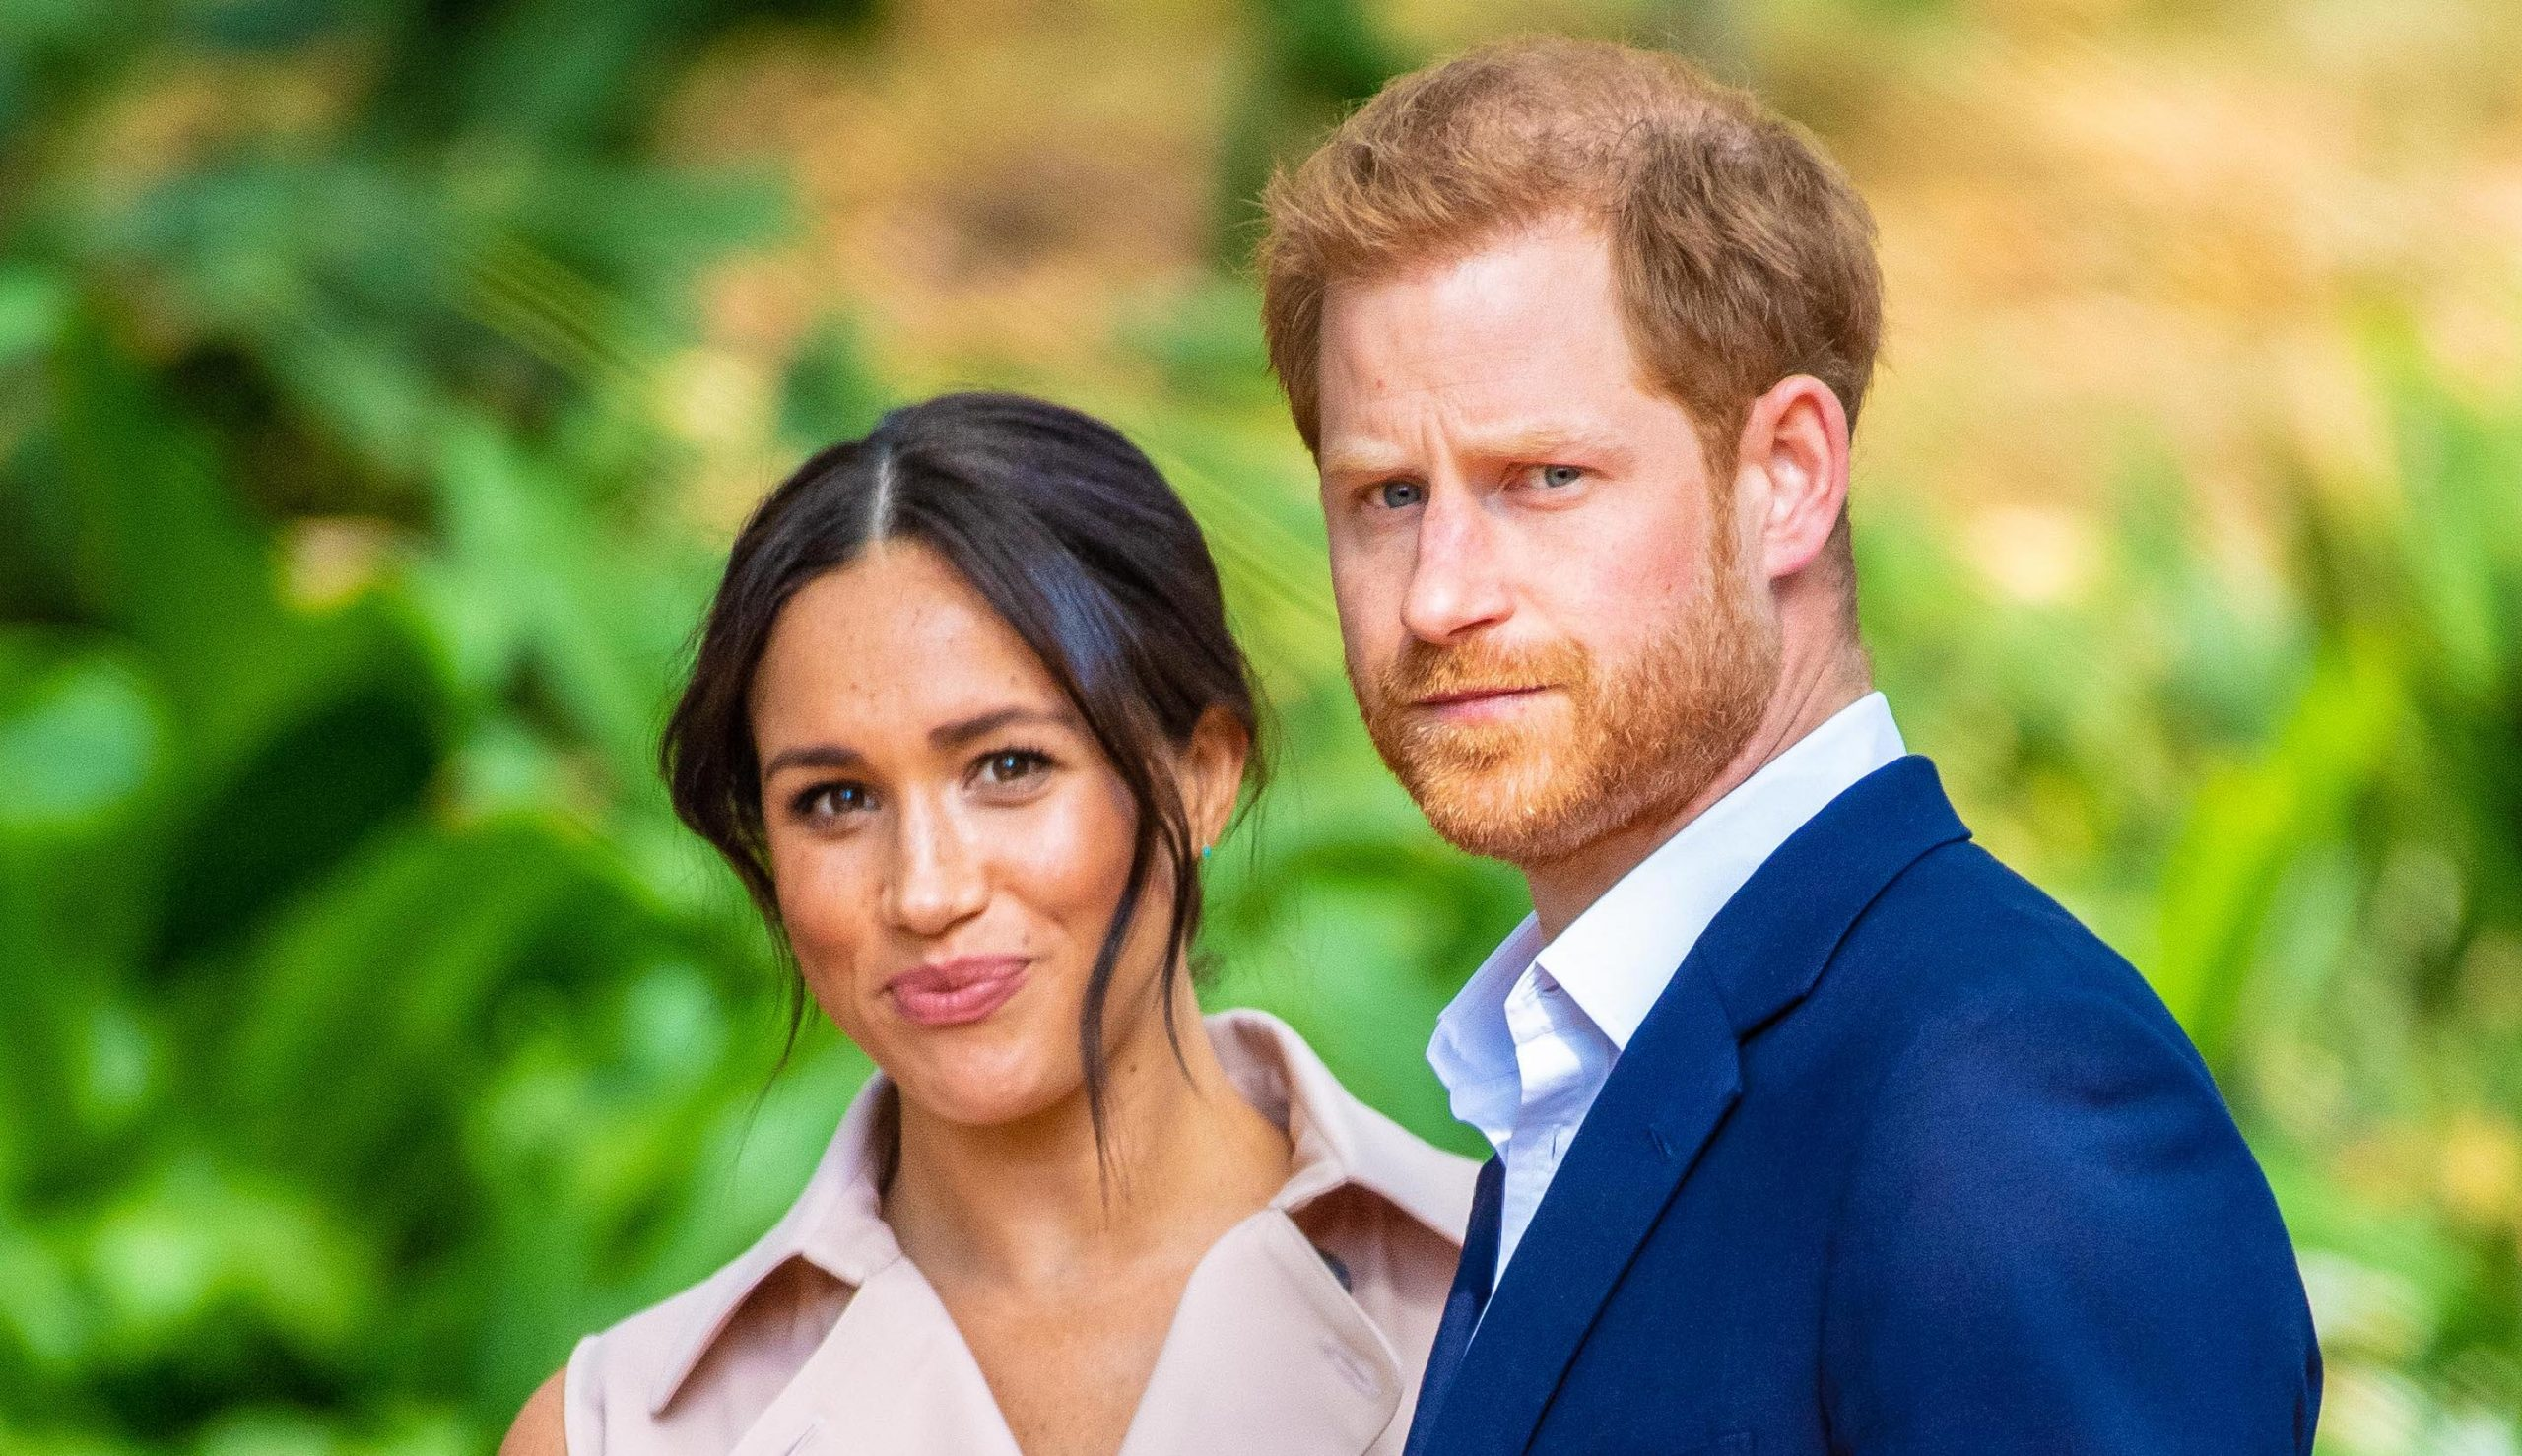 The Queen 'bans Meghan and Harry from using the Sussex Royal brand'